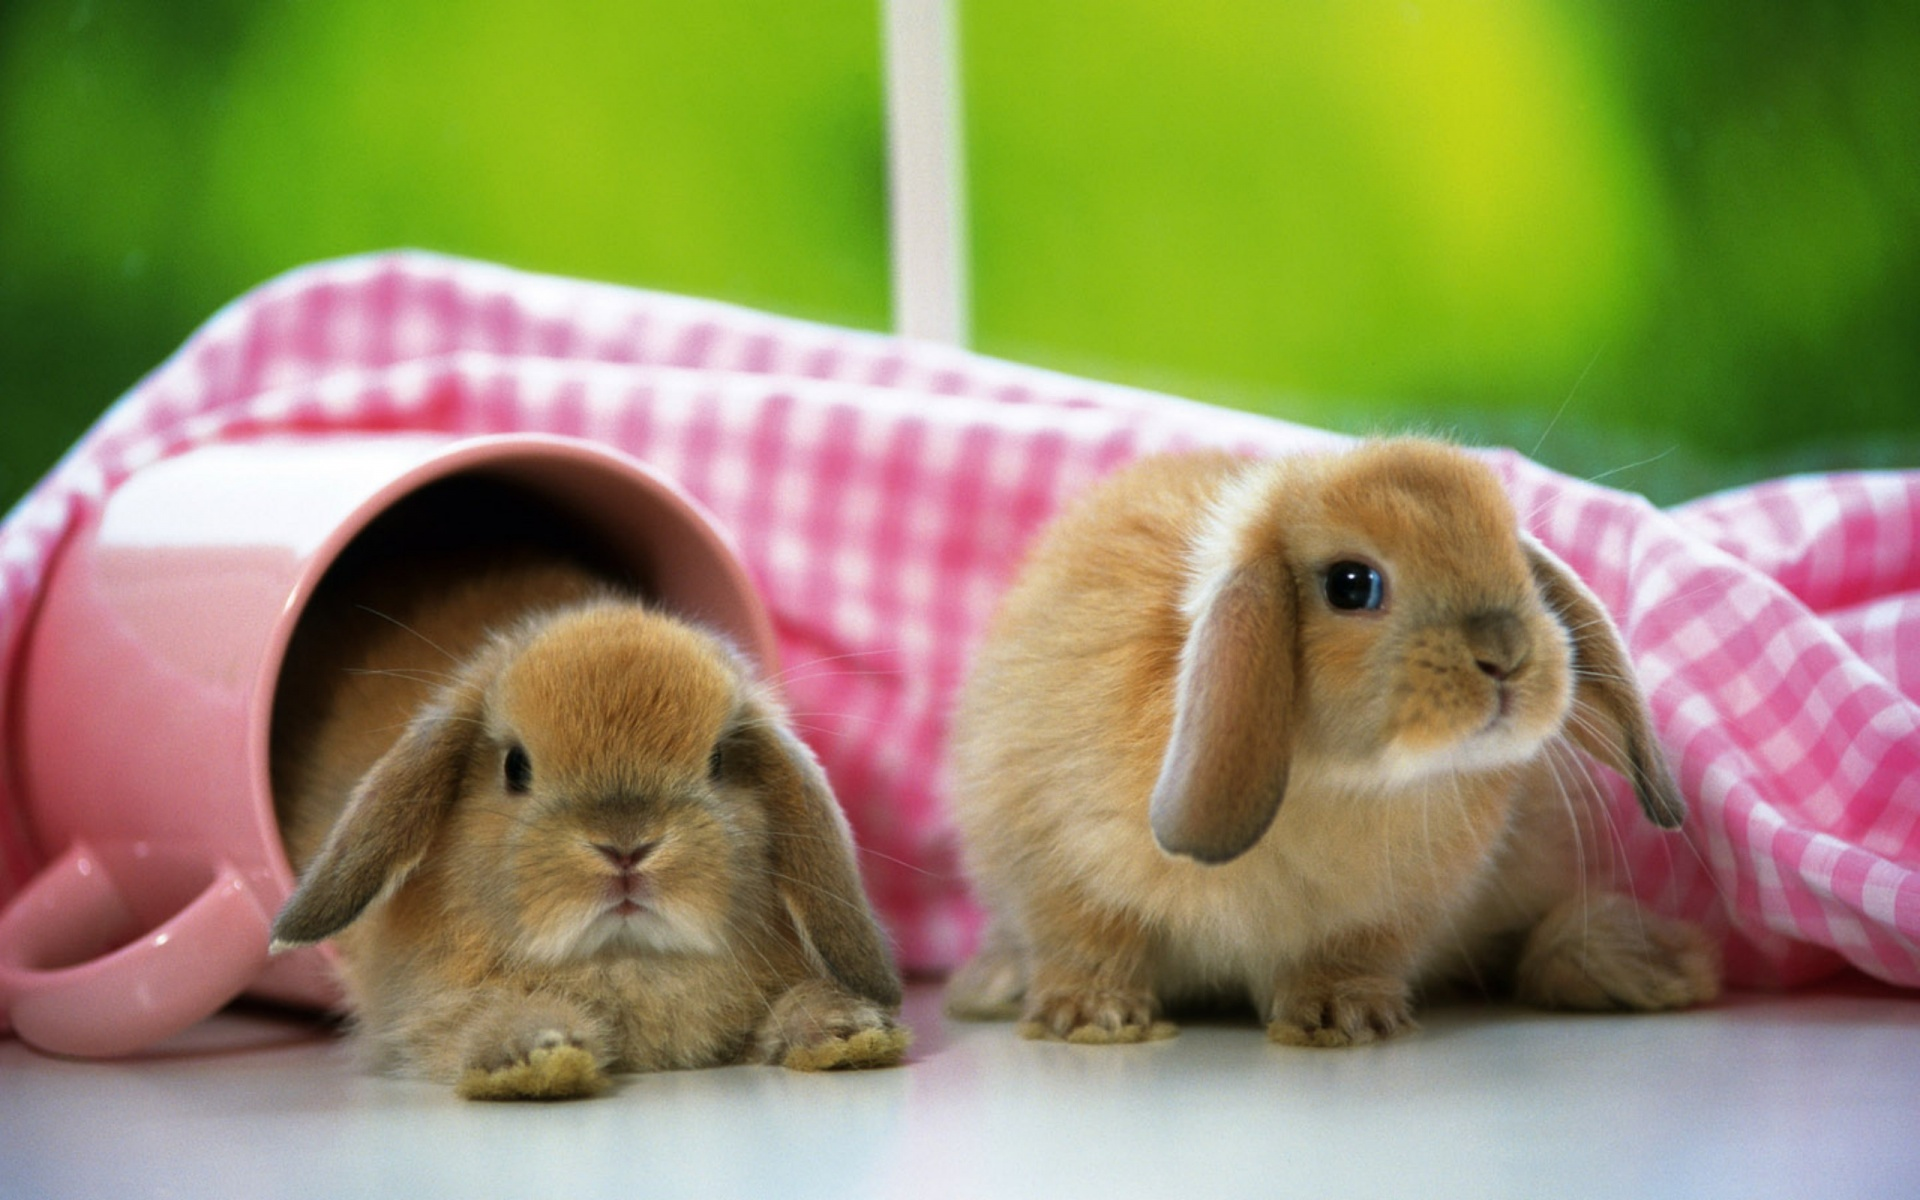 Bunny Rabbits images Bunnies HD wallpaper and background photos